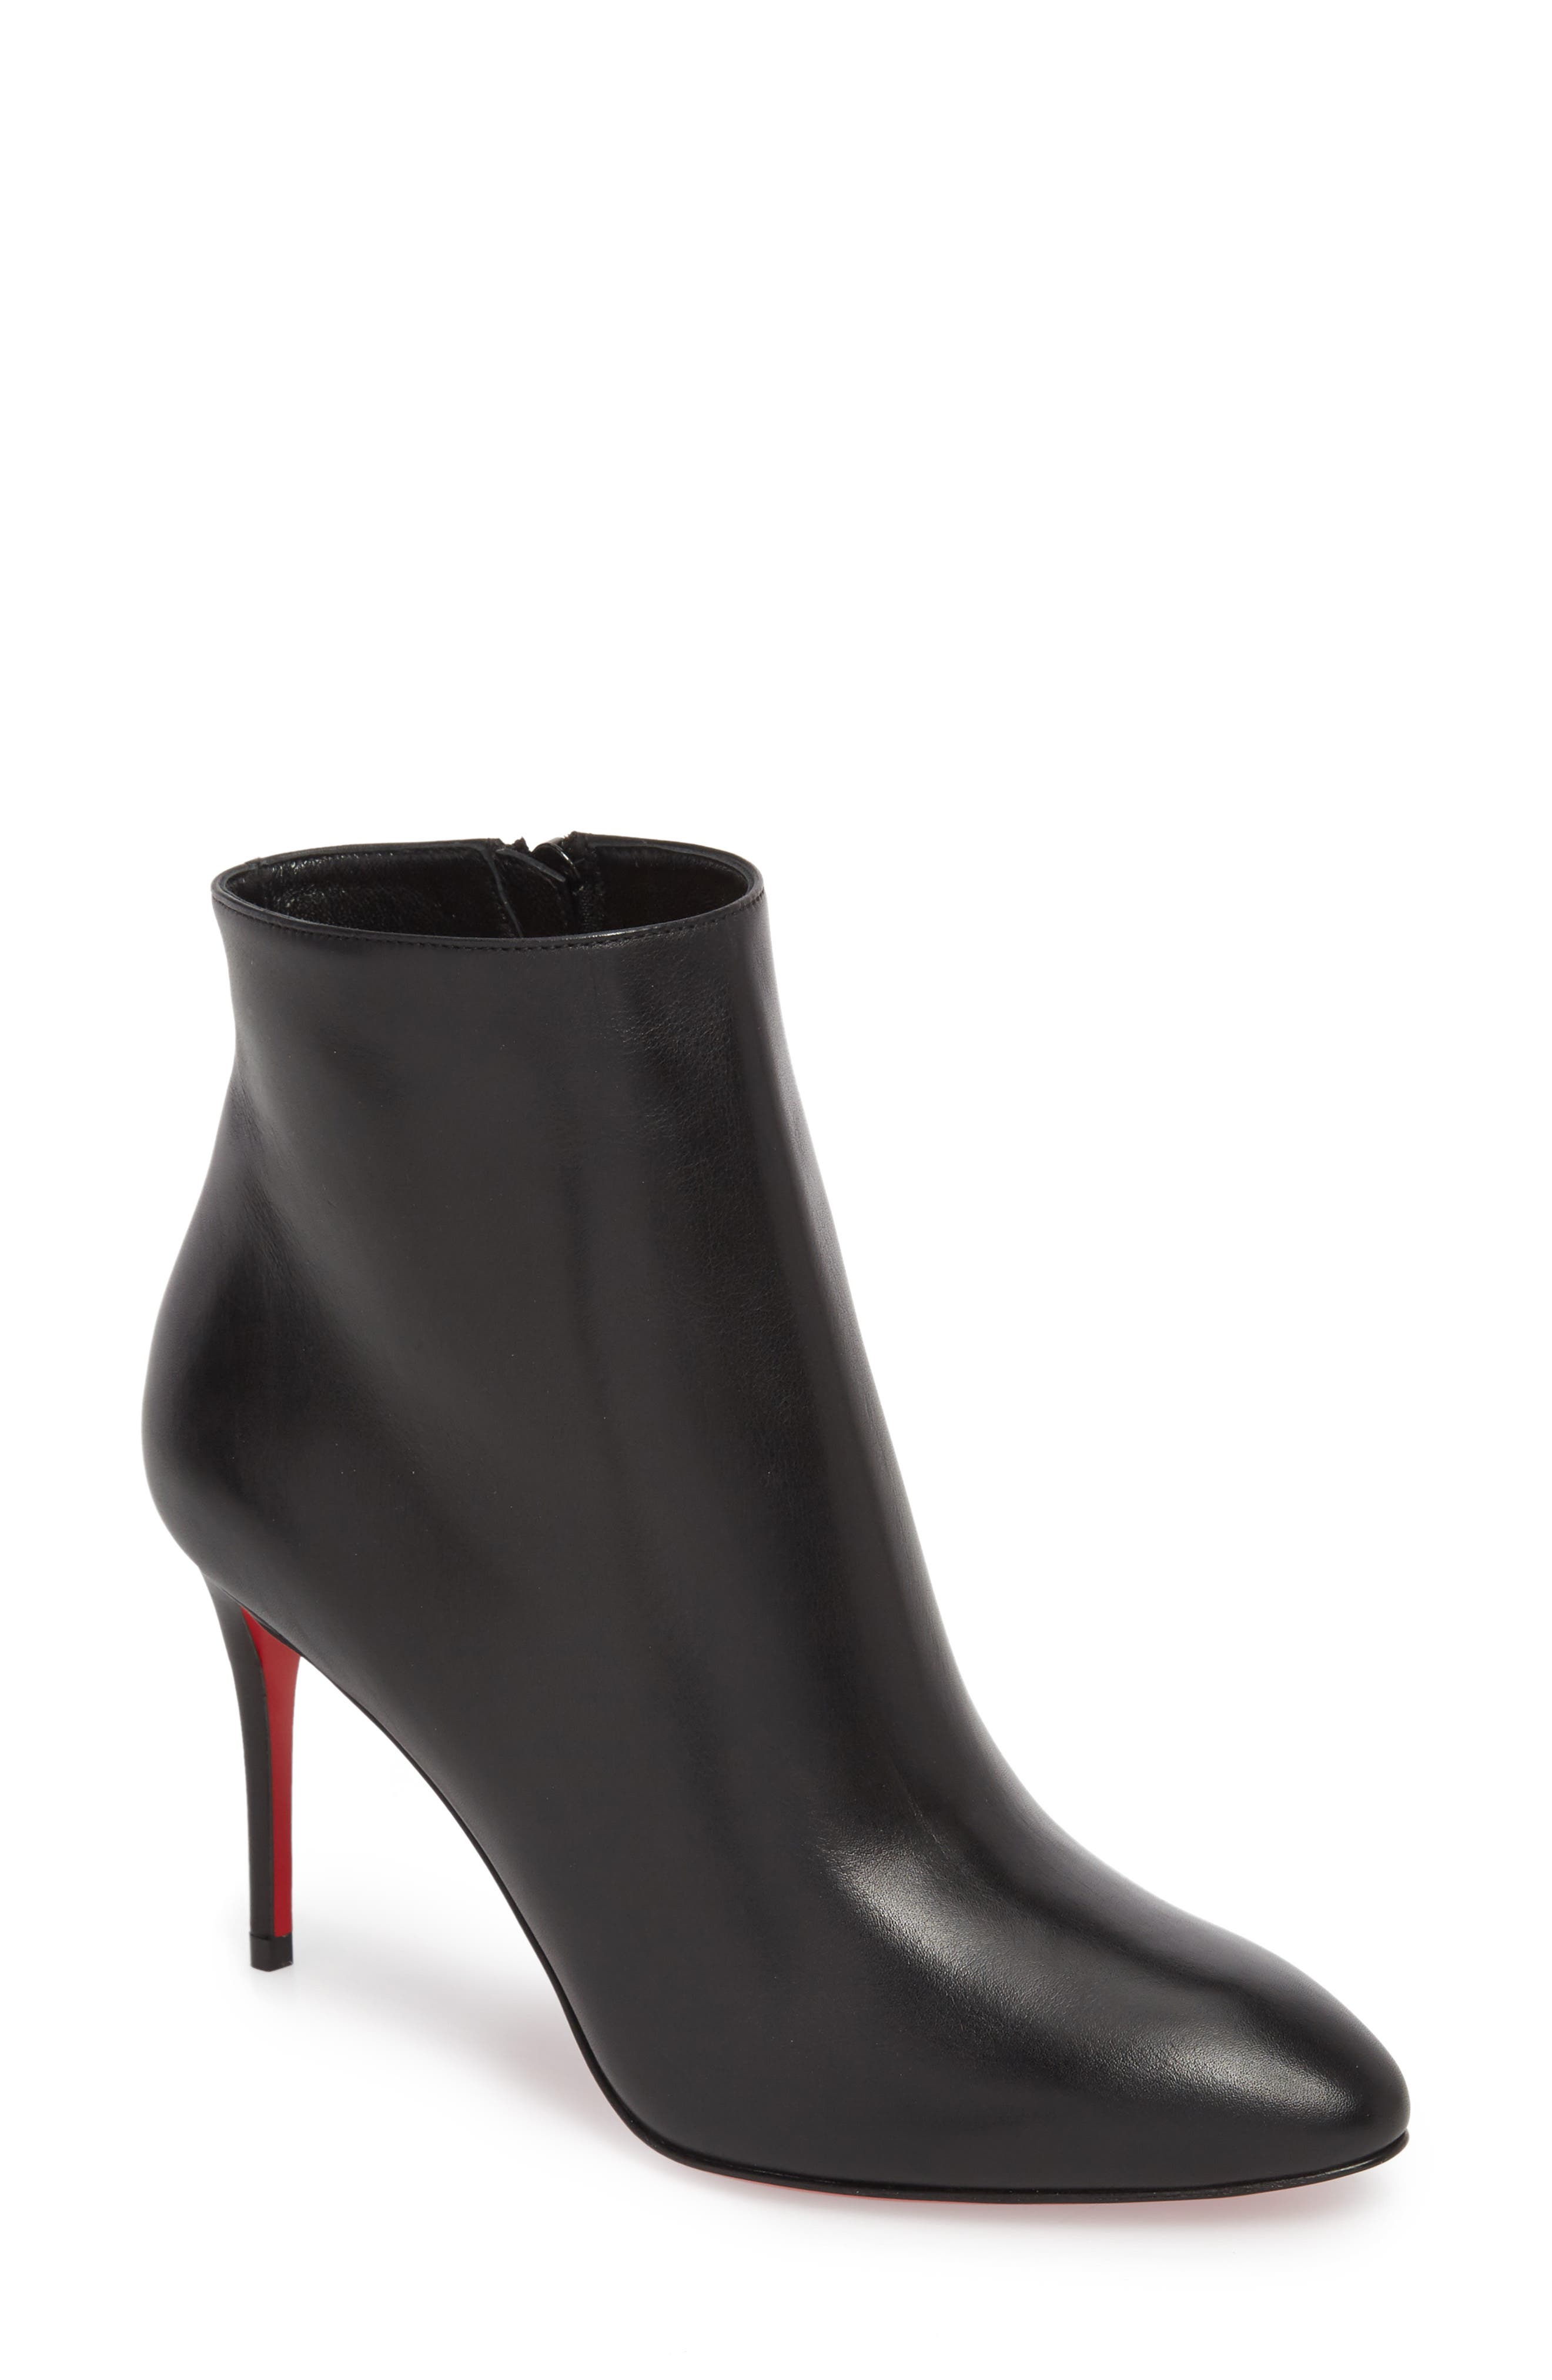 Eloise Pointy Toe Bootie,                             Main thumbnail 1, color,                             BLACK LEATHER